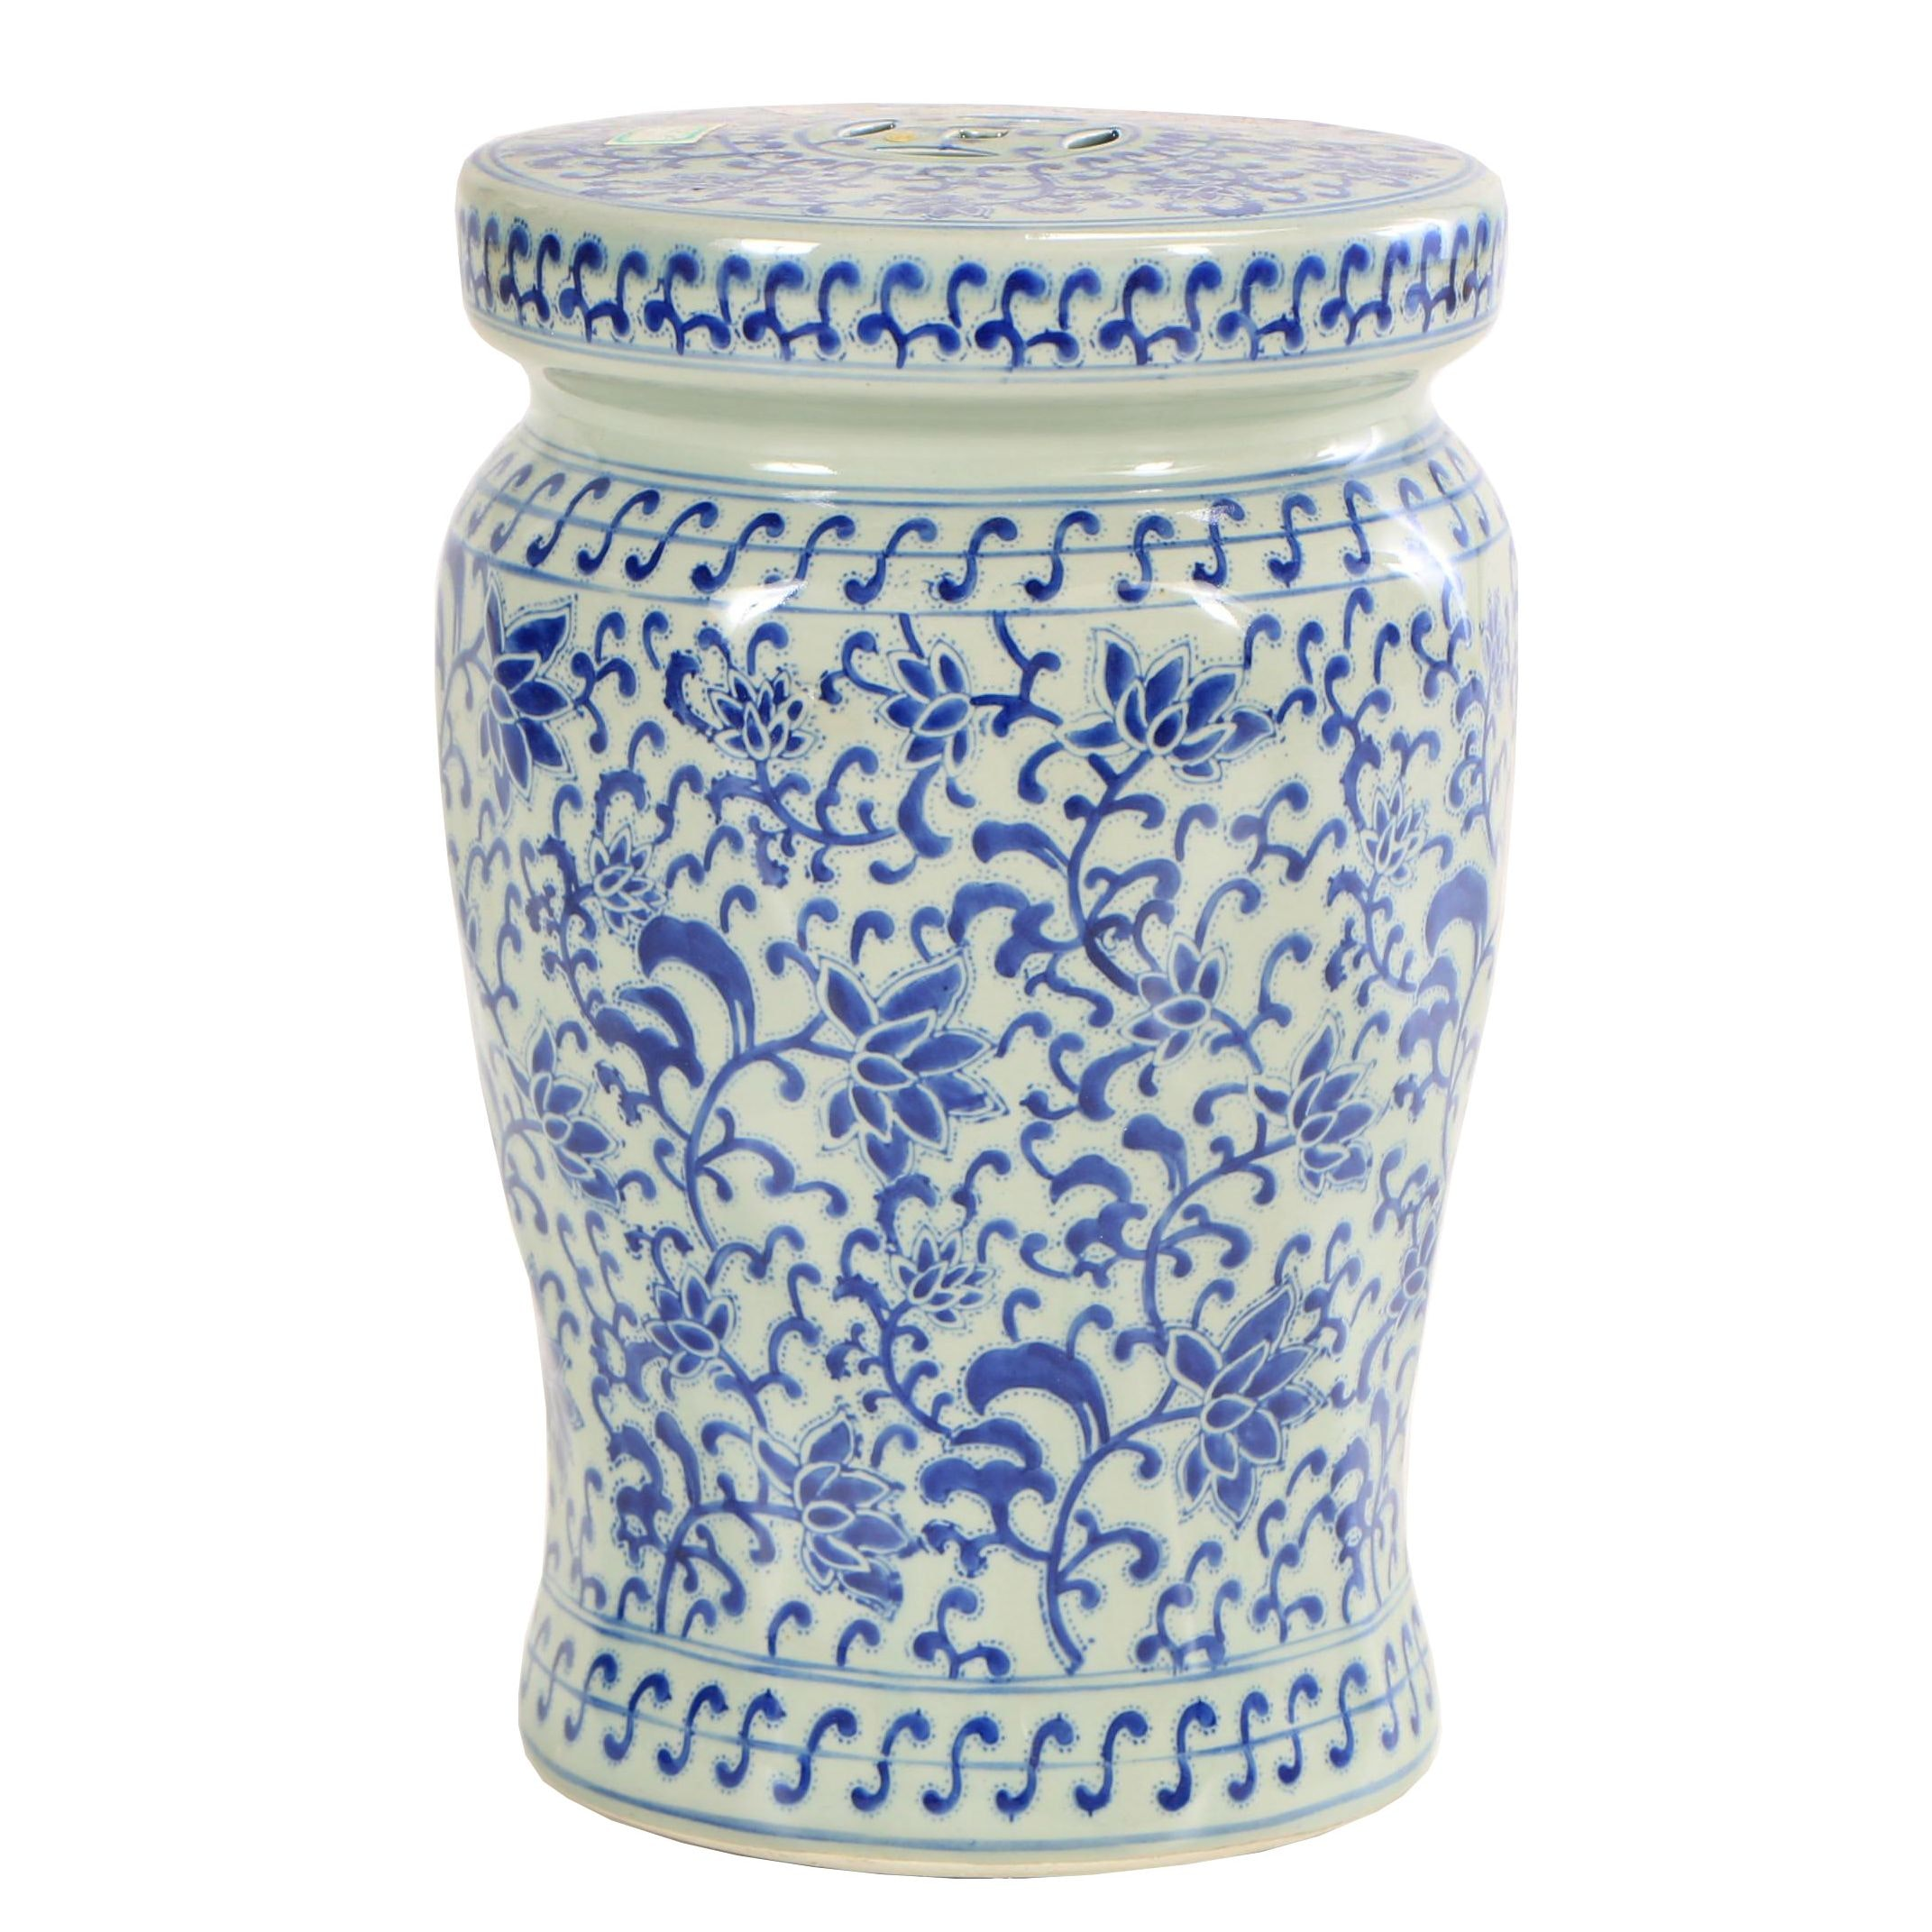 Contemporary Chinese Blue and White Lotus Flower Motif Ceramic Garden Stool